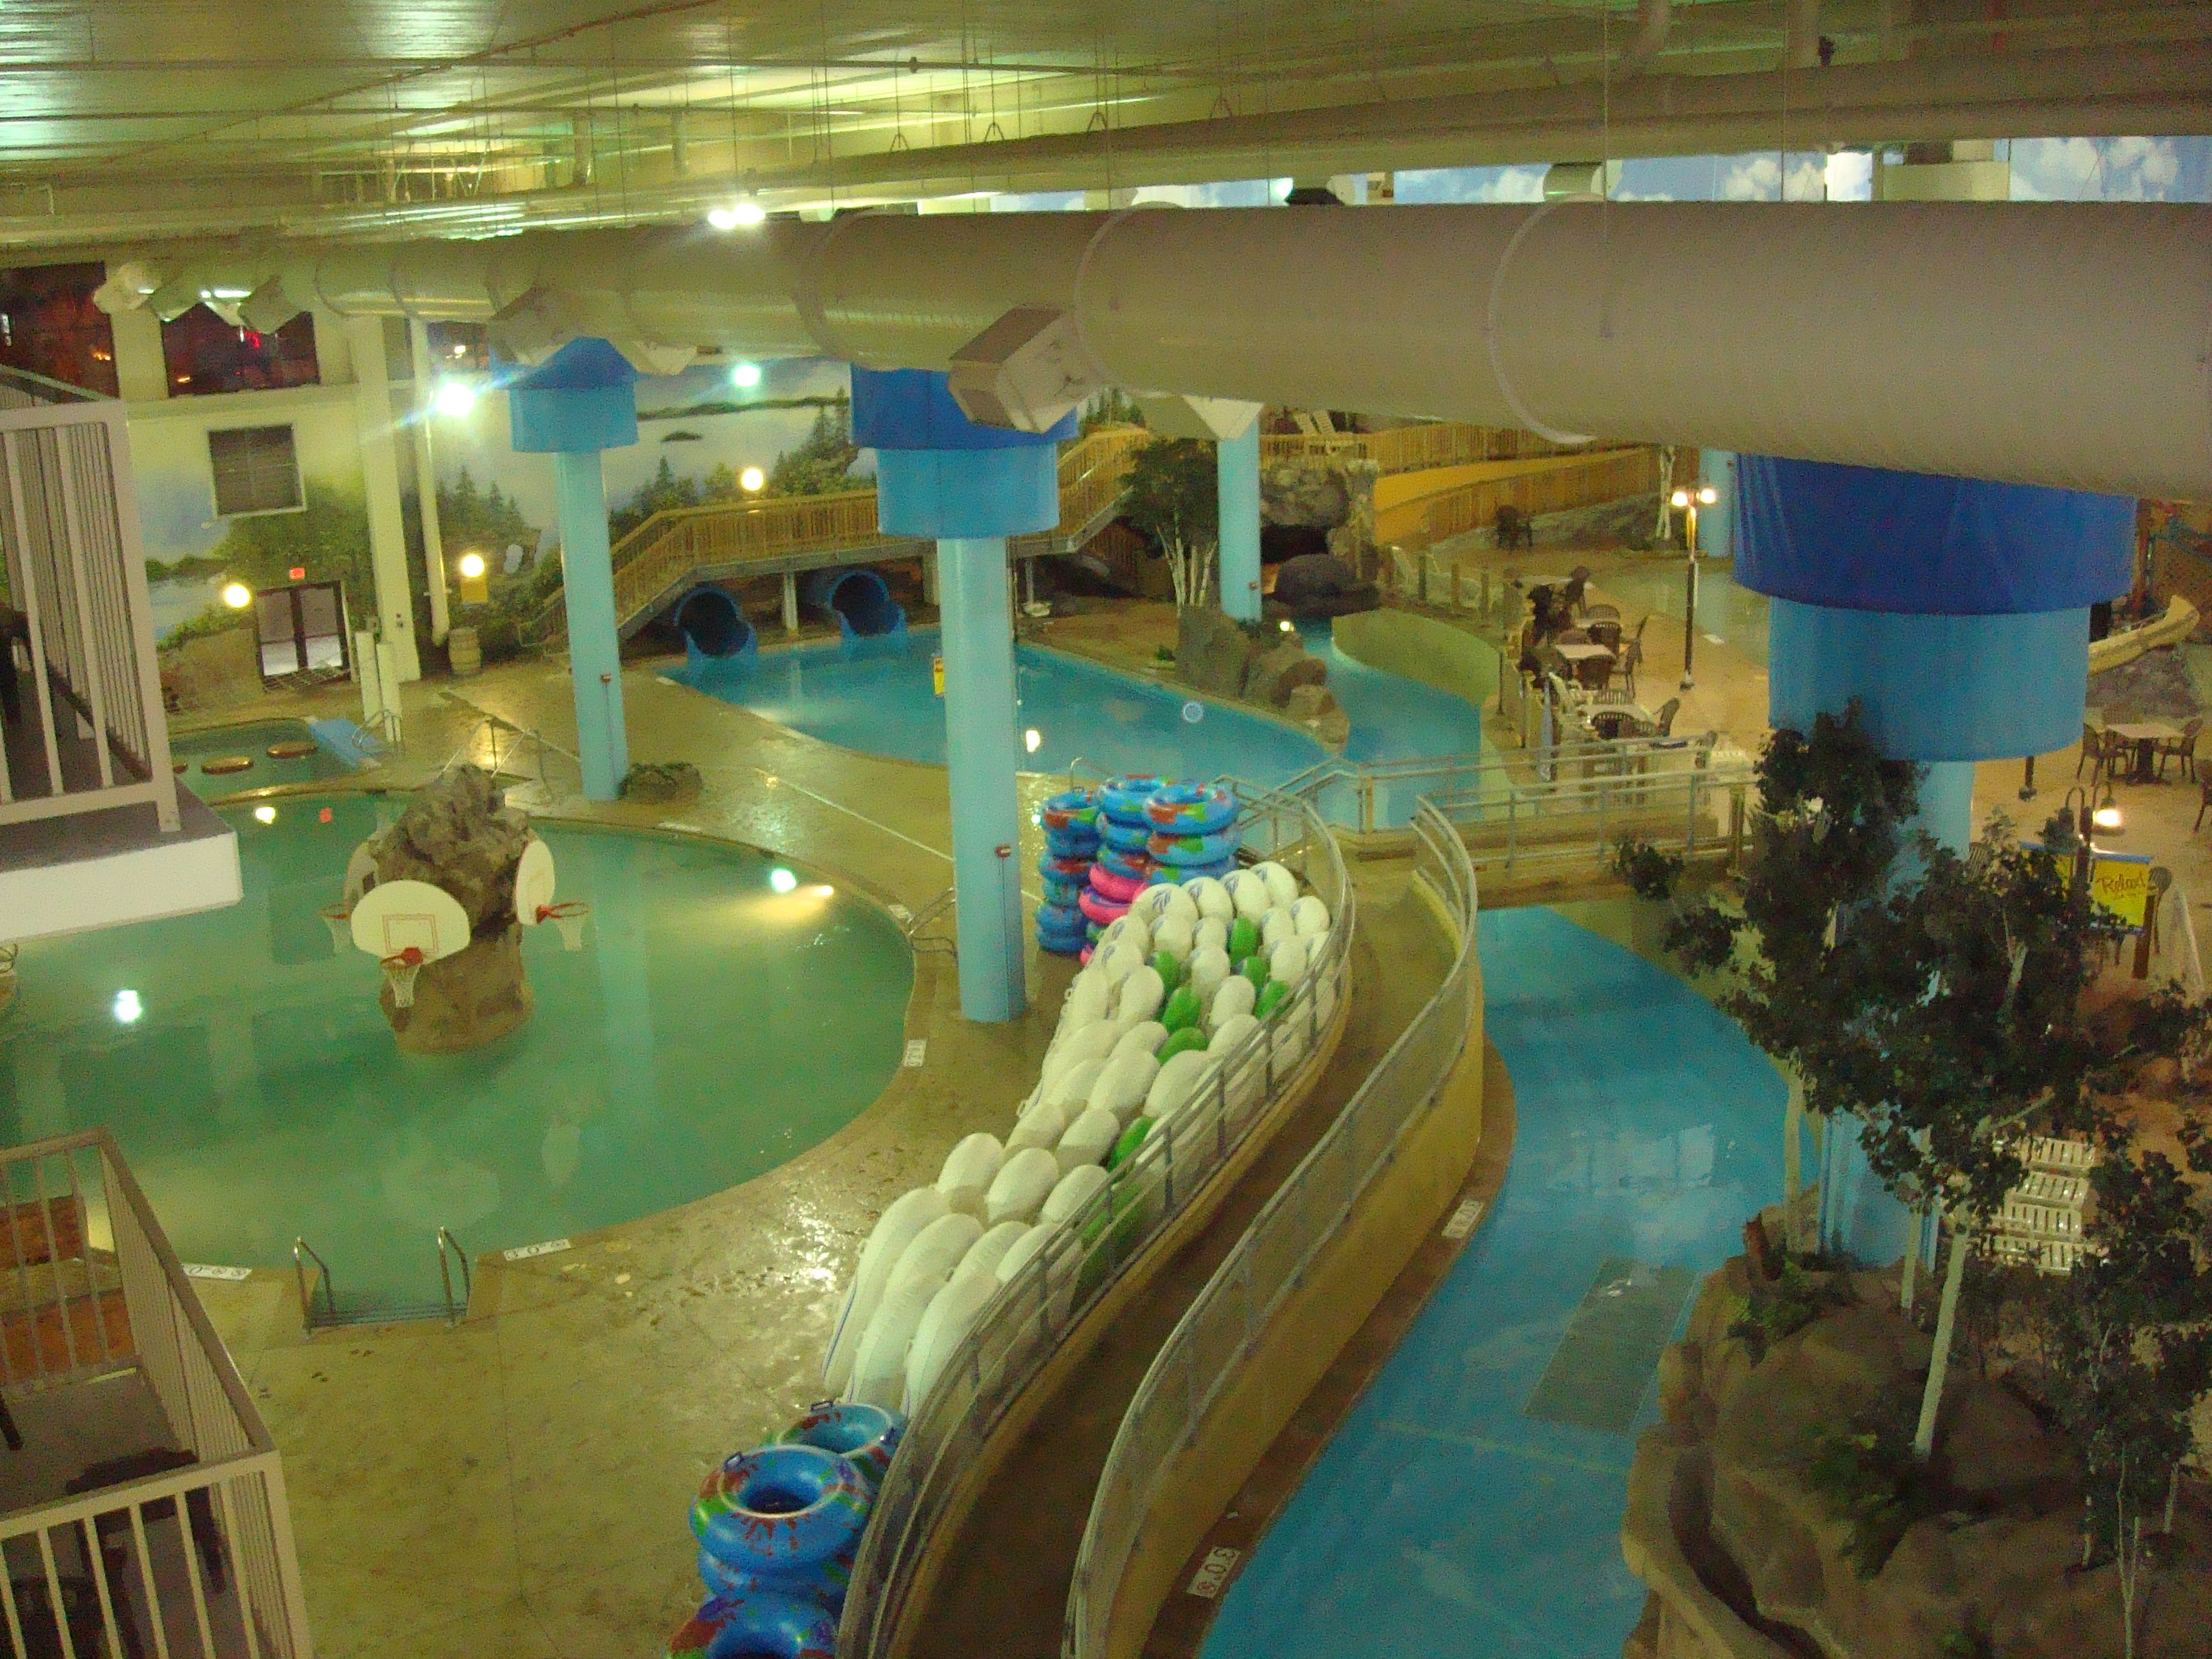 Check Out All The Fun Things To Do At The Water Park Of